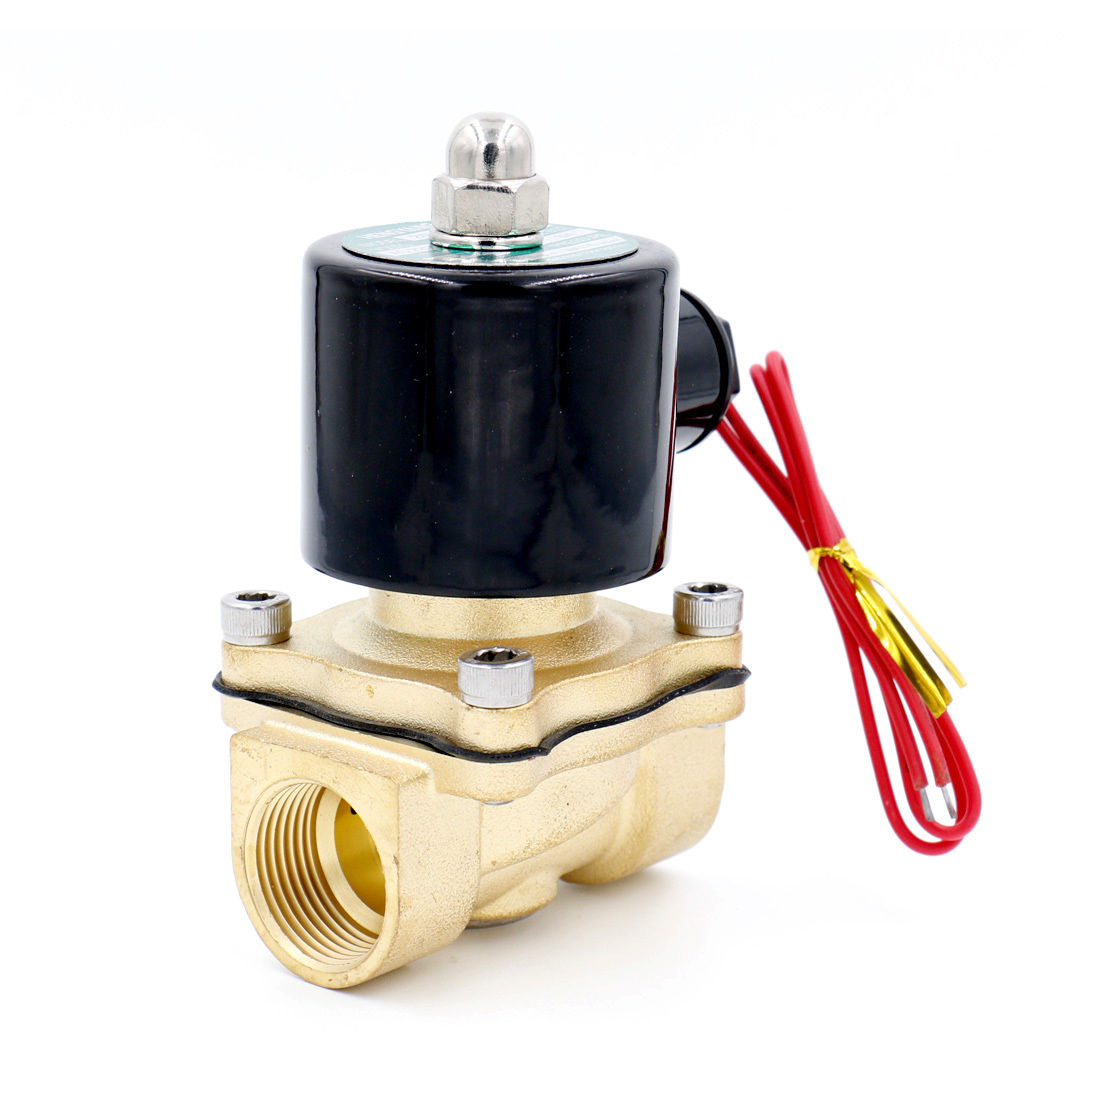 Brass Electric Solenoid Valve 2W-200-20 3/4 Inch NPT for Air Water Valve 110V NC тюнер little angel cherub wst 600b